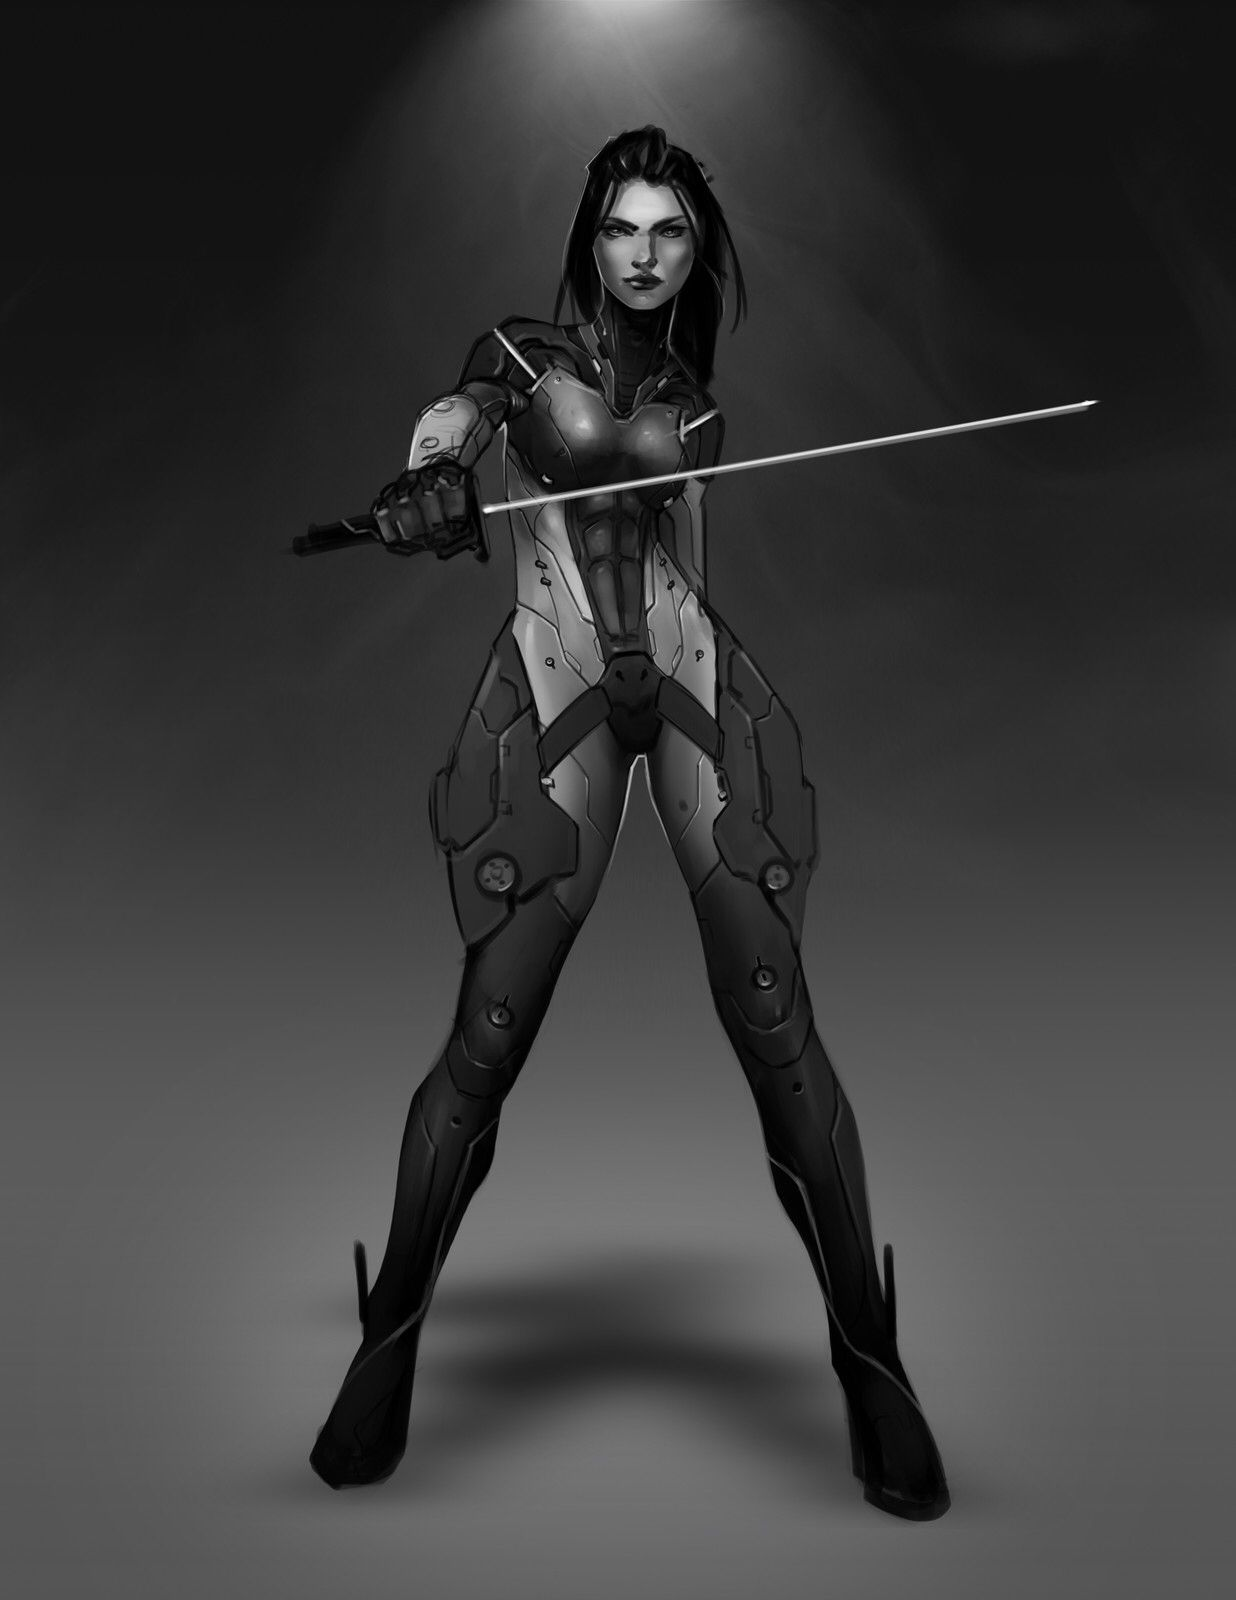 Alien Woman Warrior With Thighs From Outerspace